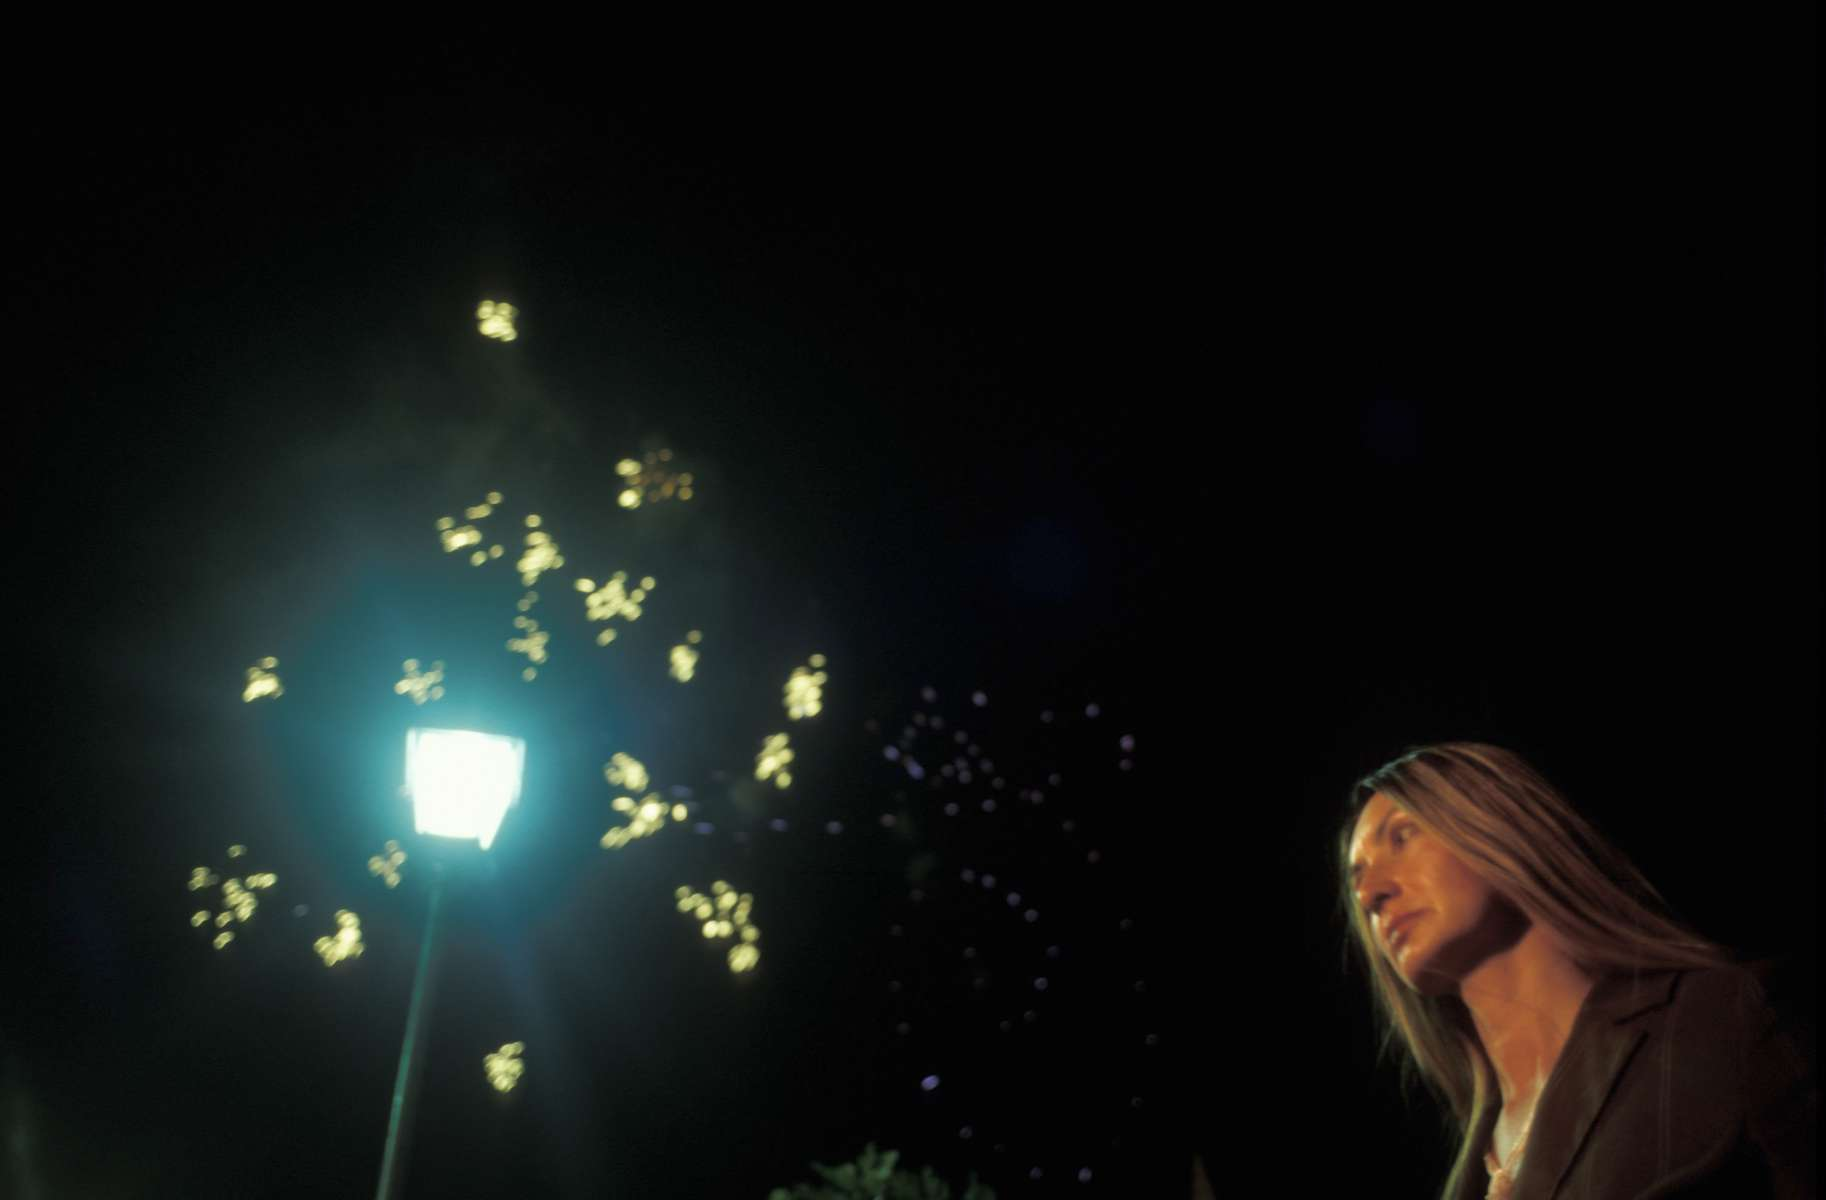 A television reporter waits to do a live report as fireworks light up the sky during the dedication ceremonies of the rebuilt Mostar Bridge.